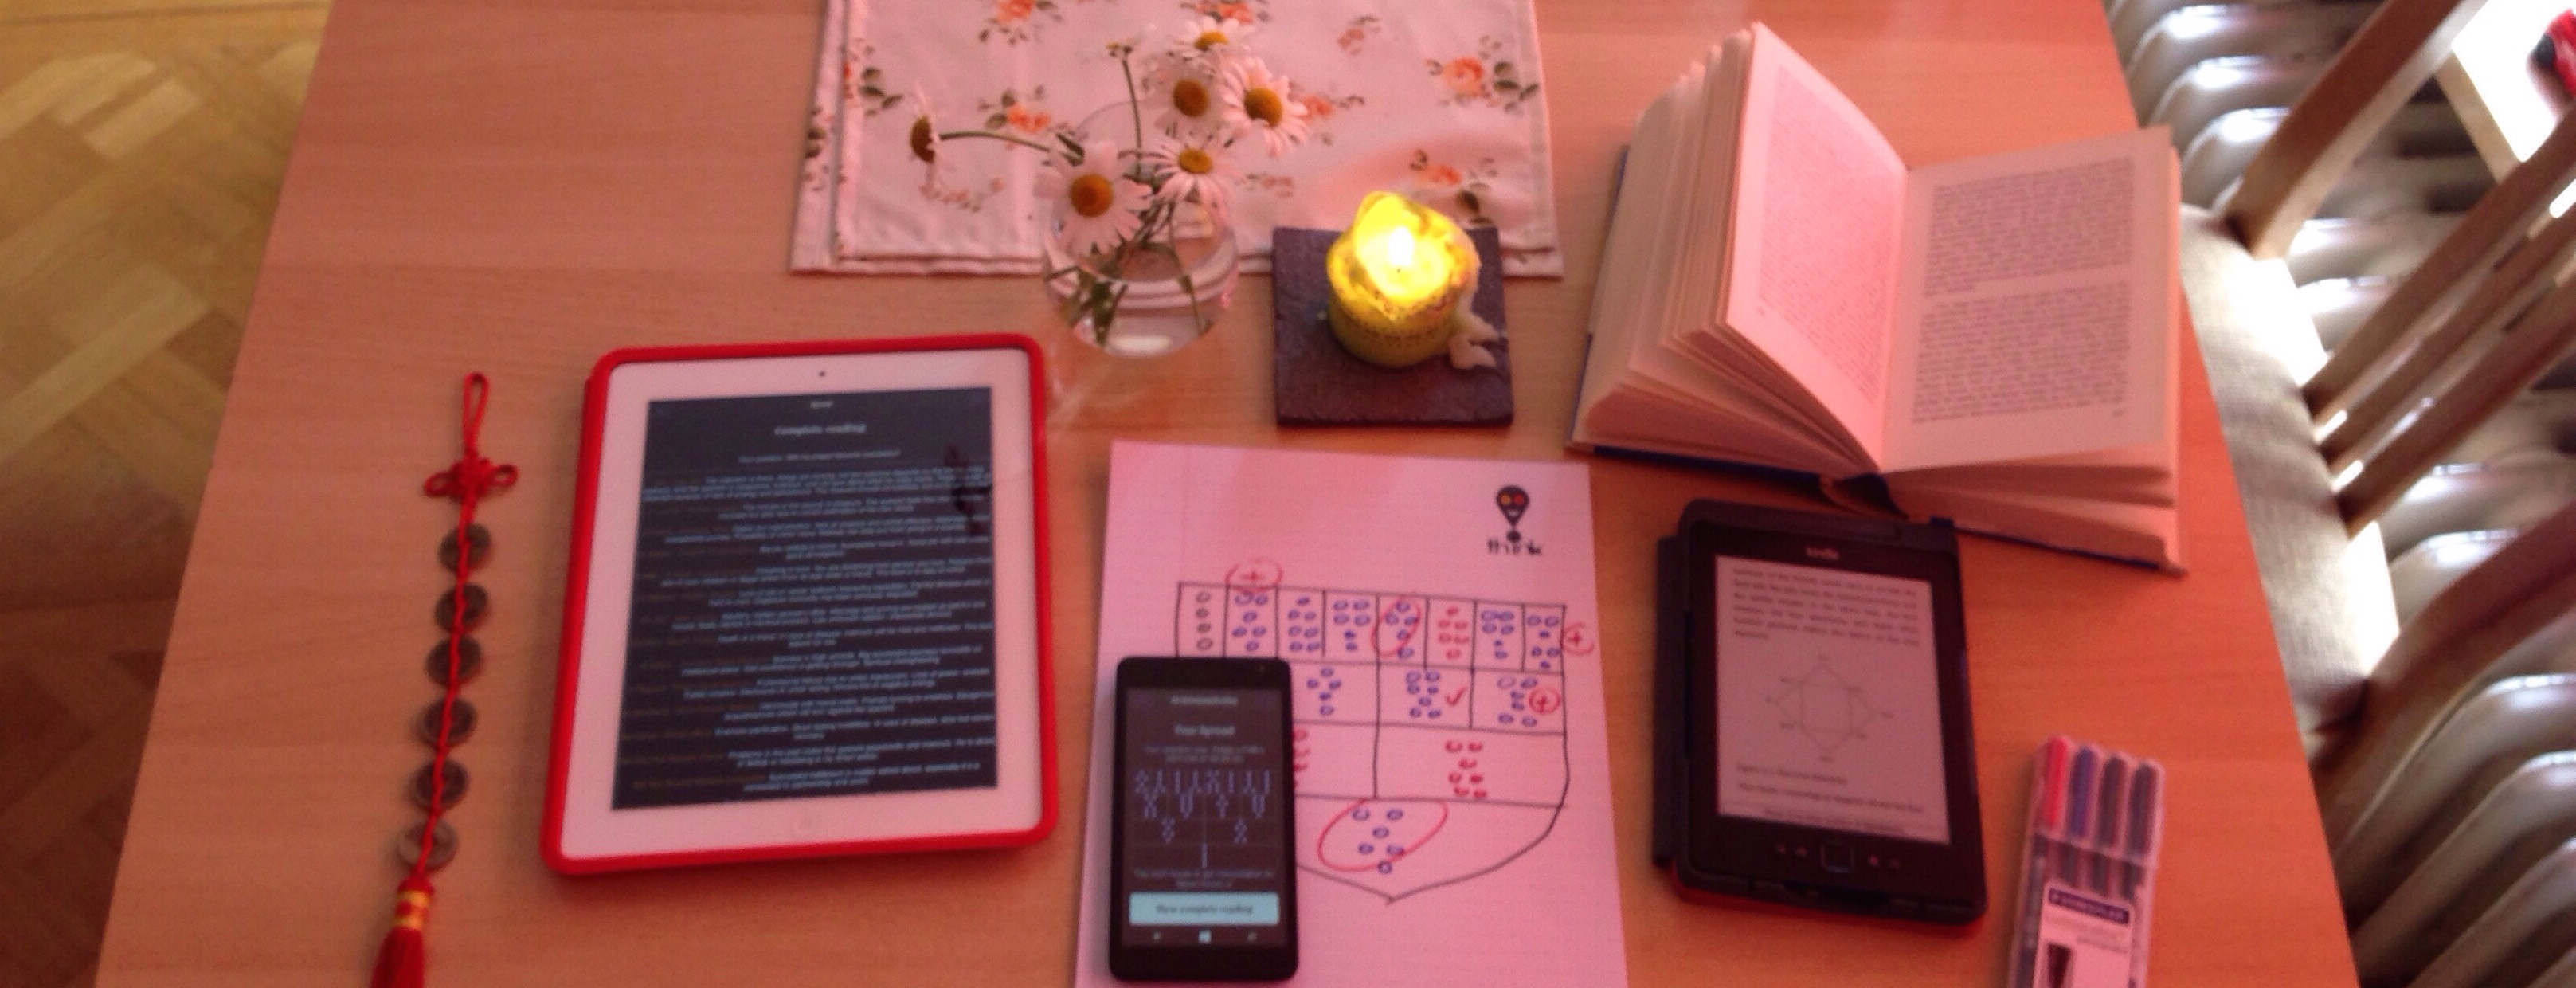 create and interpret psychic reading using GEOMANCY